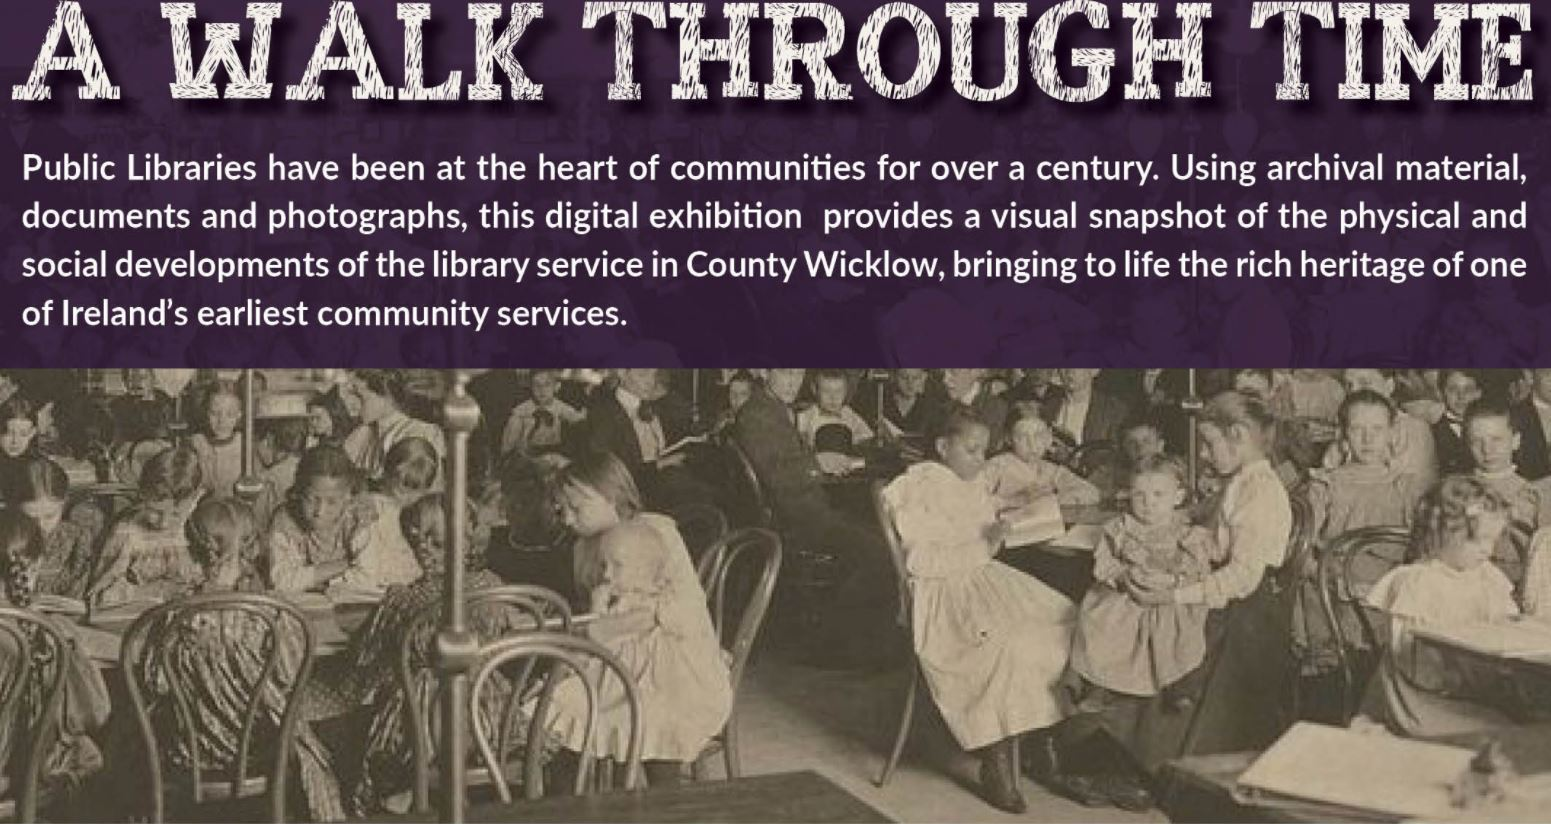 Carnegie Libraries of County Wicklow - an exhibition